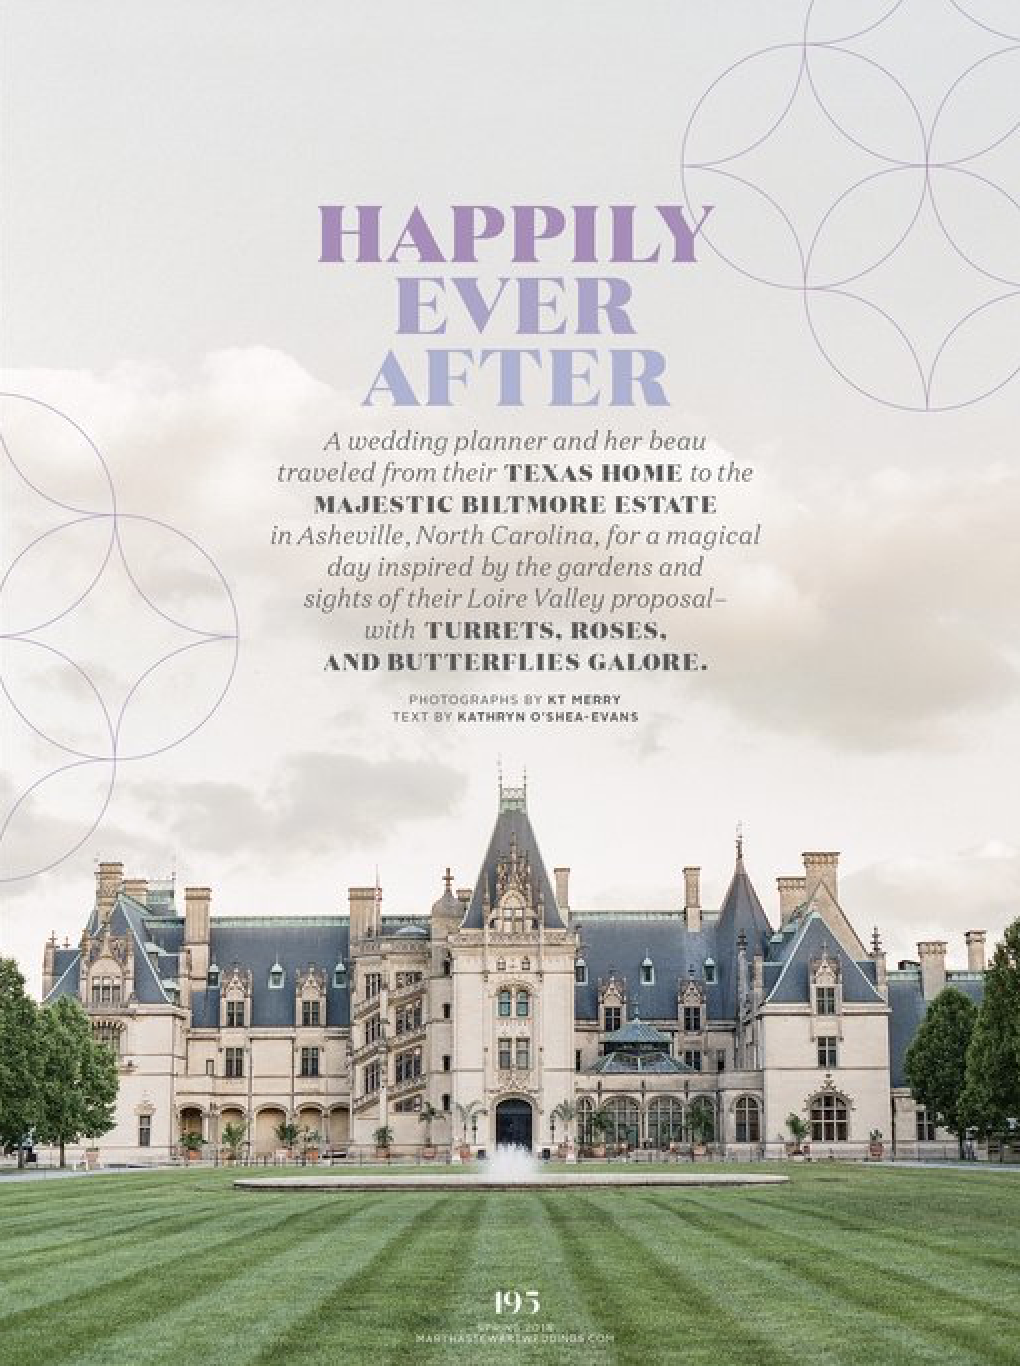 Clay and Rebecca of The Wildflowers' Wedding in   Martha Stewart Weddings     Spring Issue 2018